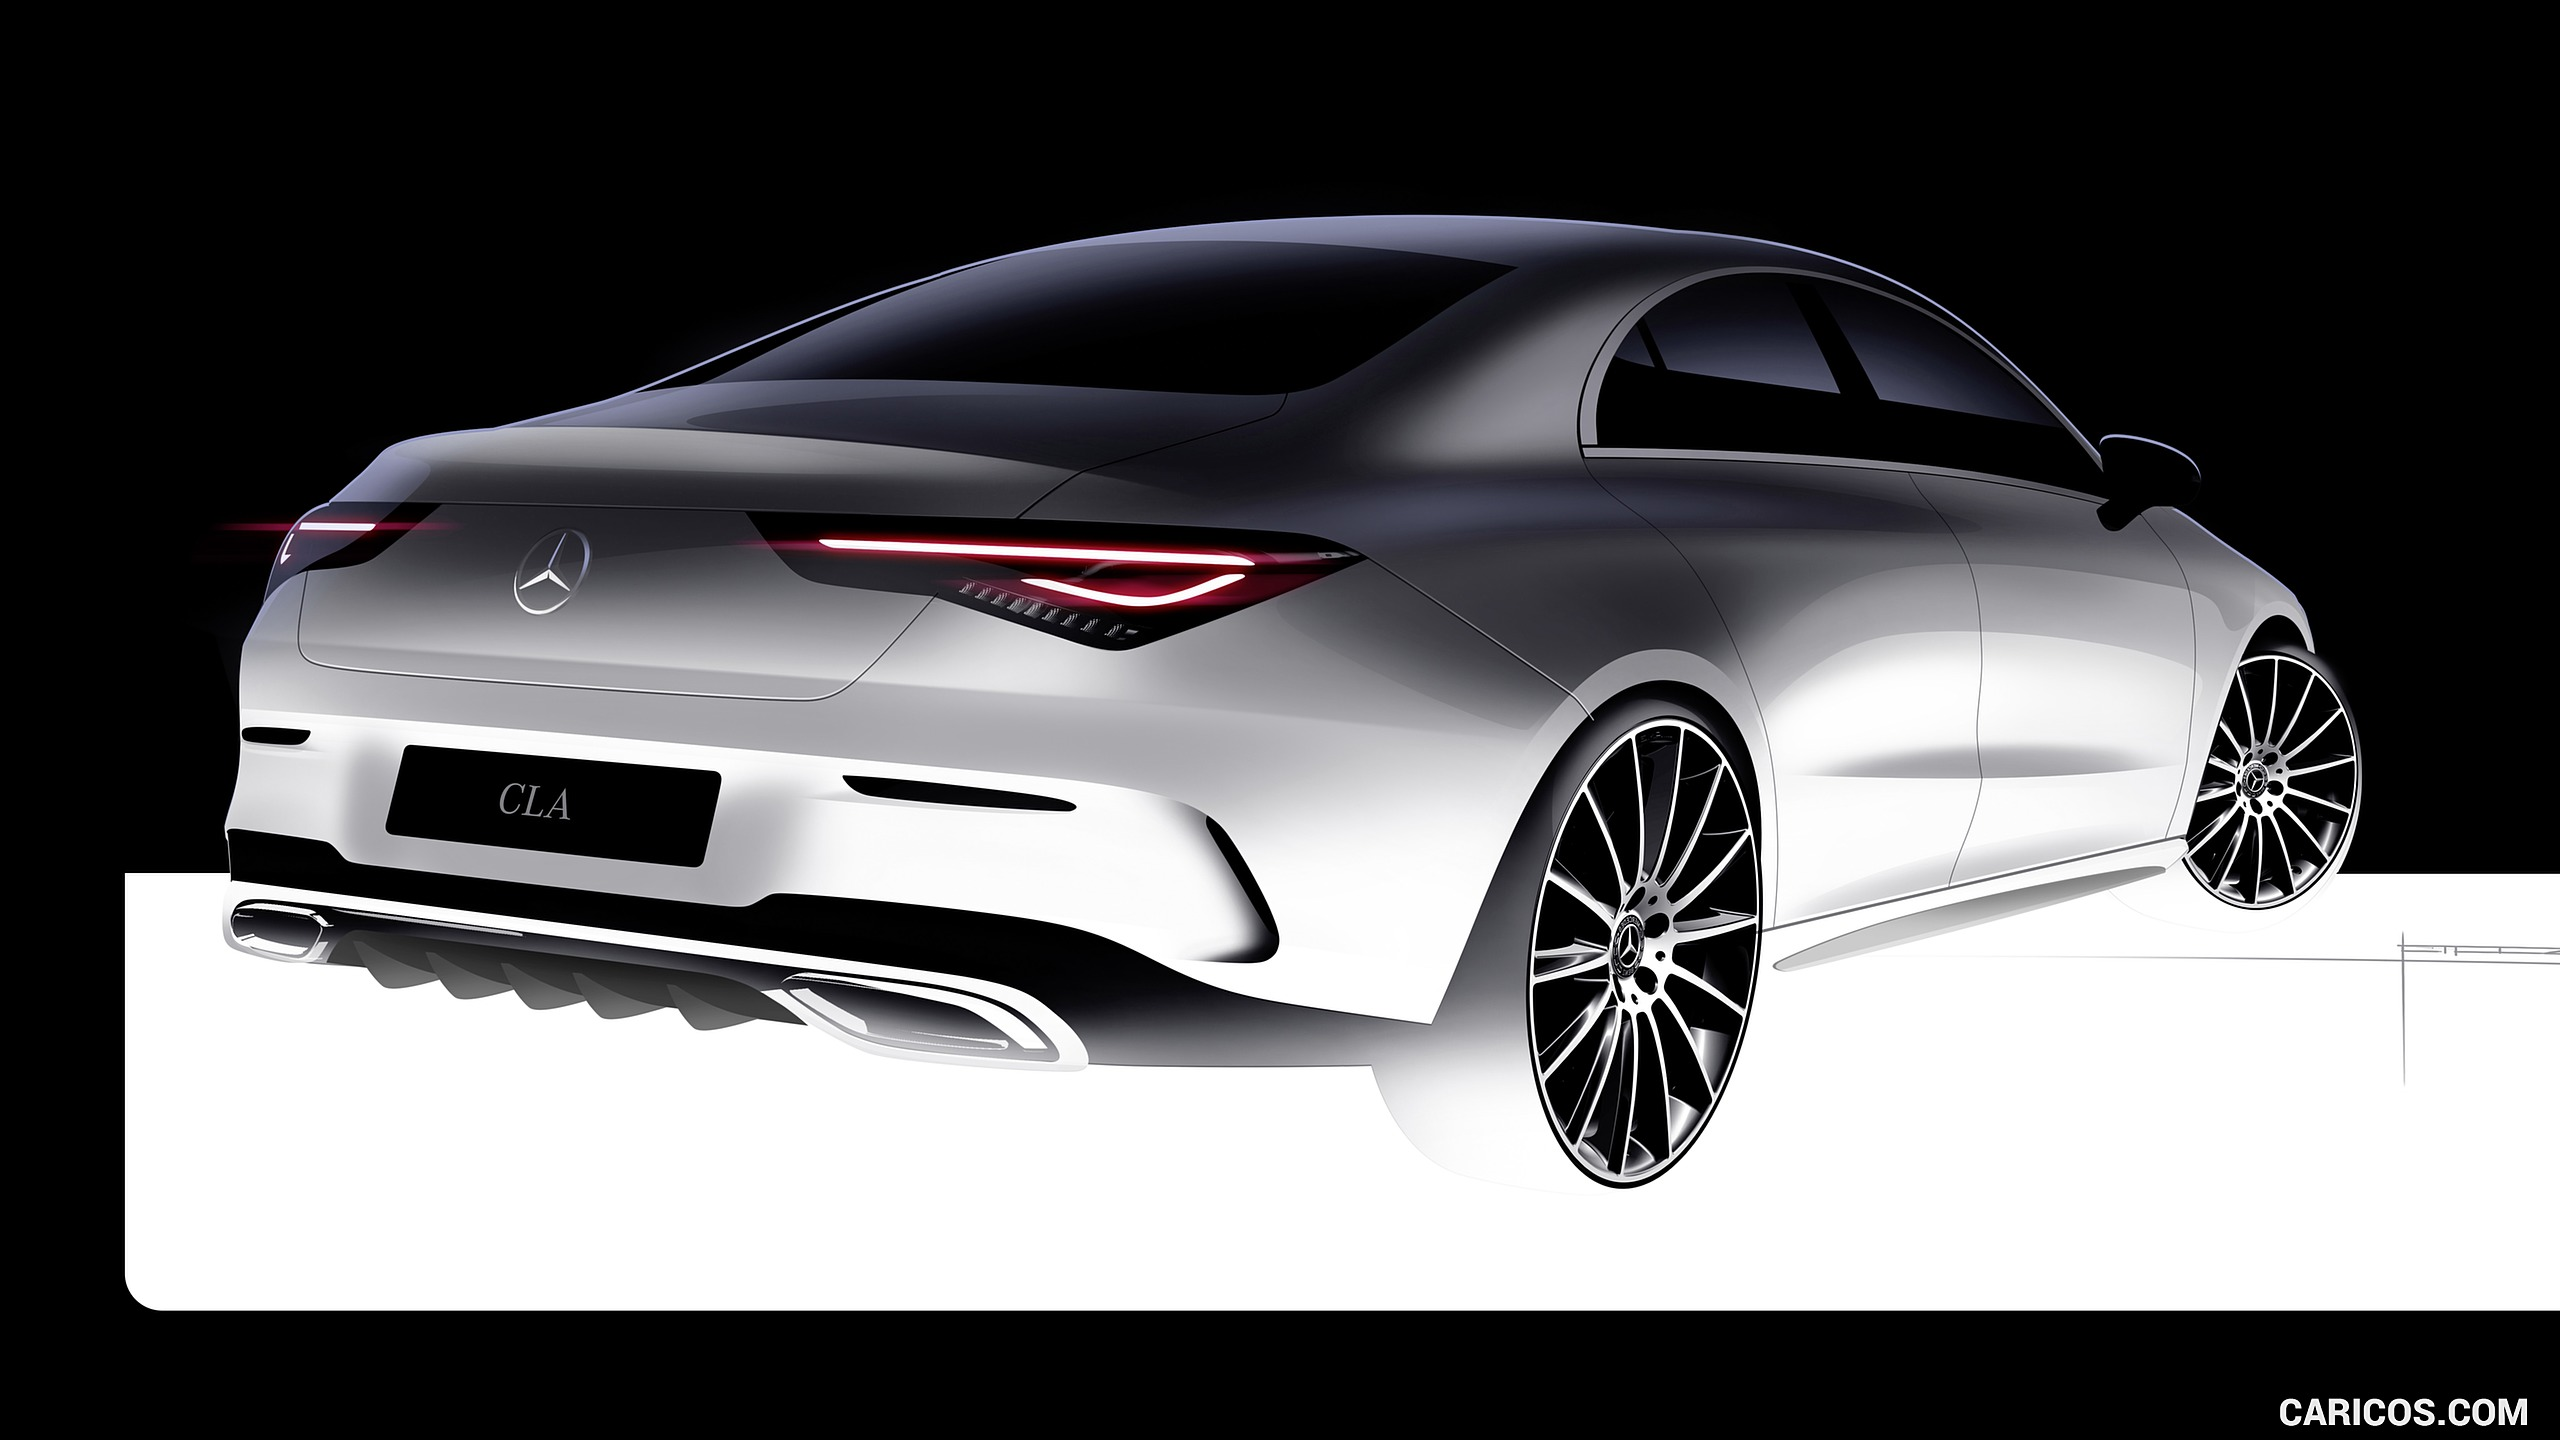 2020 Mercedes Benz CLA 250 Coupe   Design Sketch HD Wallpaper 49 2560x1440